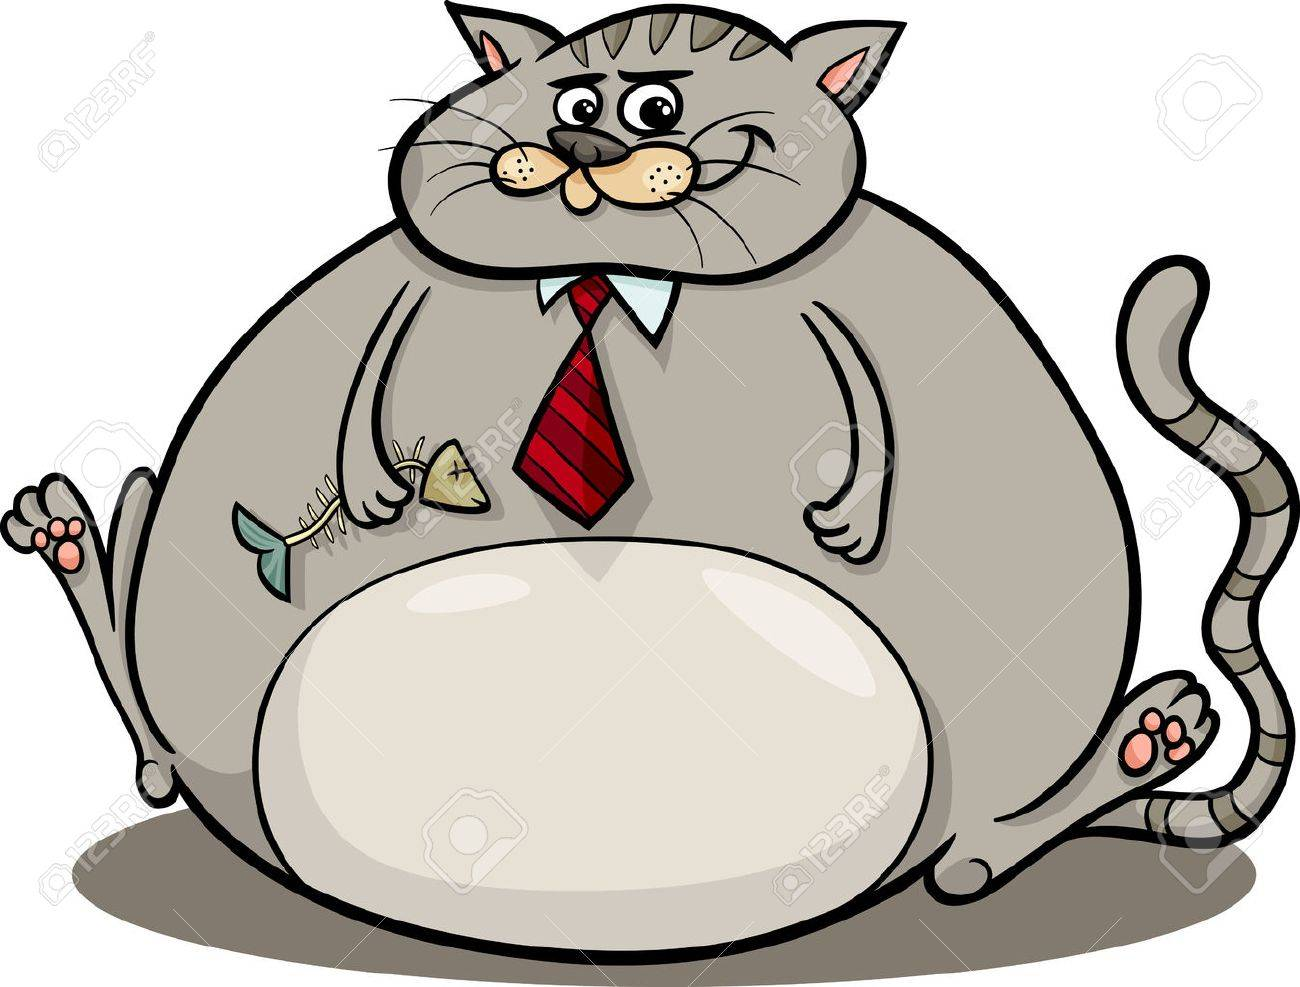 Fat cat clipart 3 » Clipart Station.